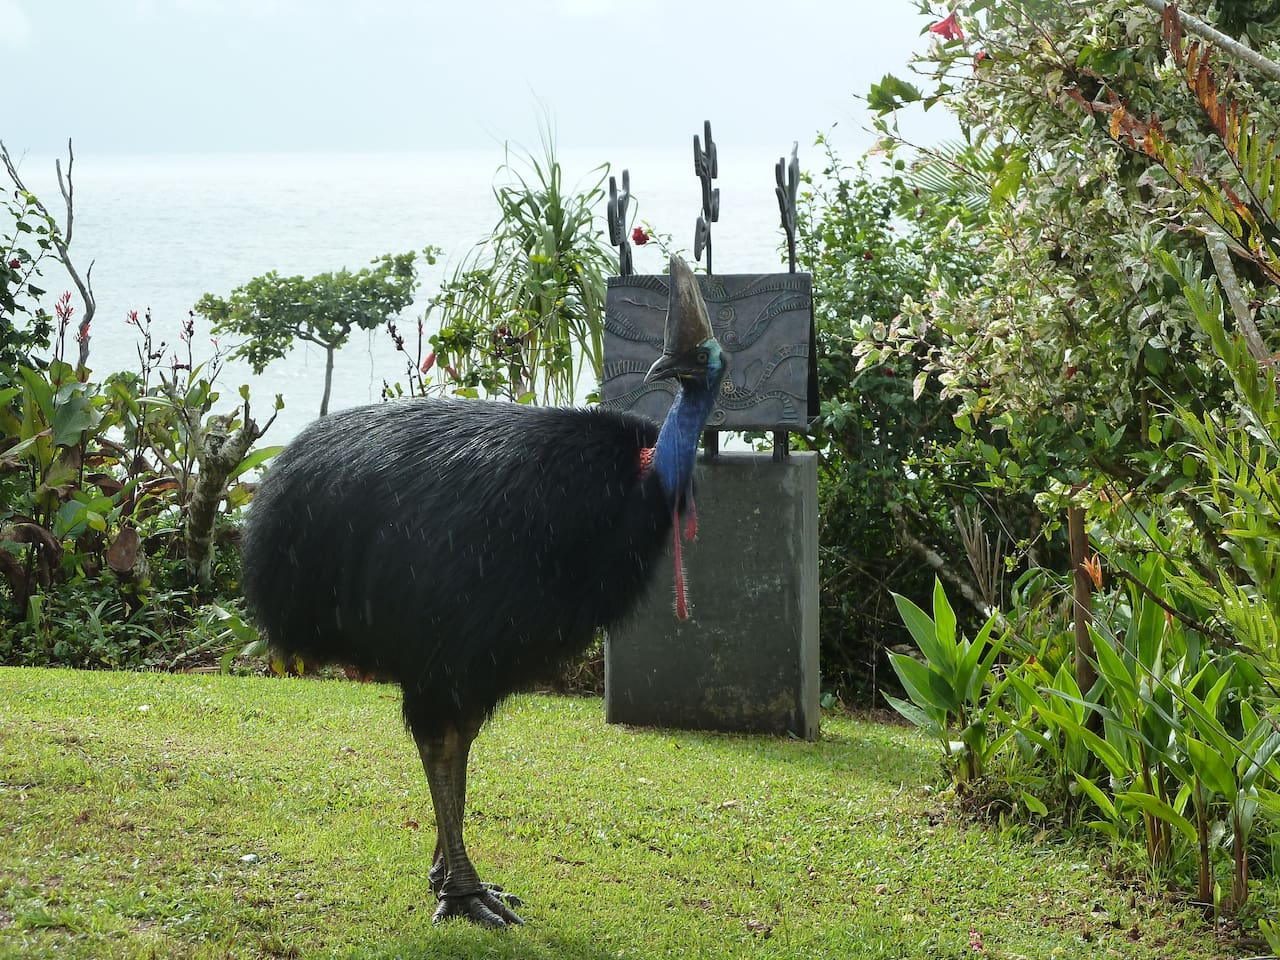 A cassowary in the front garden with panoramic views of the Coral Sea and tropical coastline.